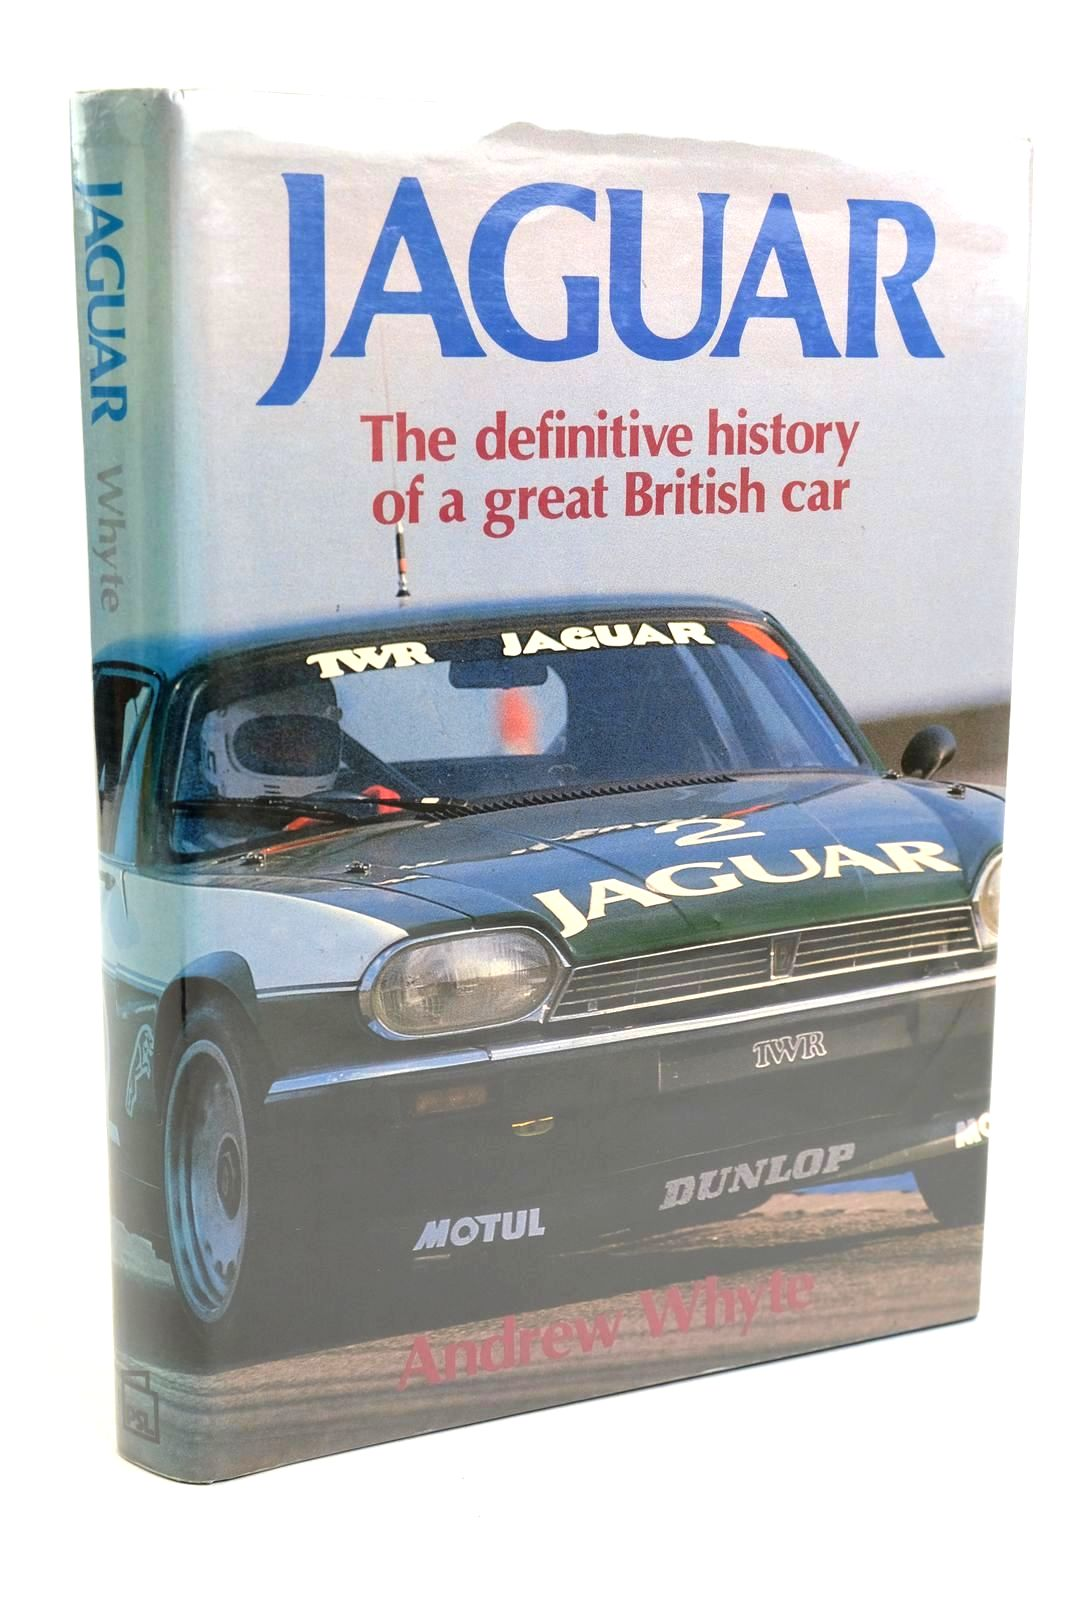 Photo of JAGUAR THE HISTORY OF A GREAT BRITISH CAR written by Whyte, Andrew published by Patrick Stephens (STOCK CODE: 1320359)  for sale by Stella & Rose's Books